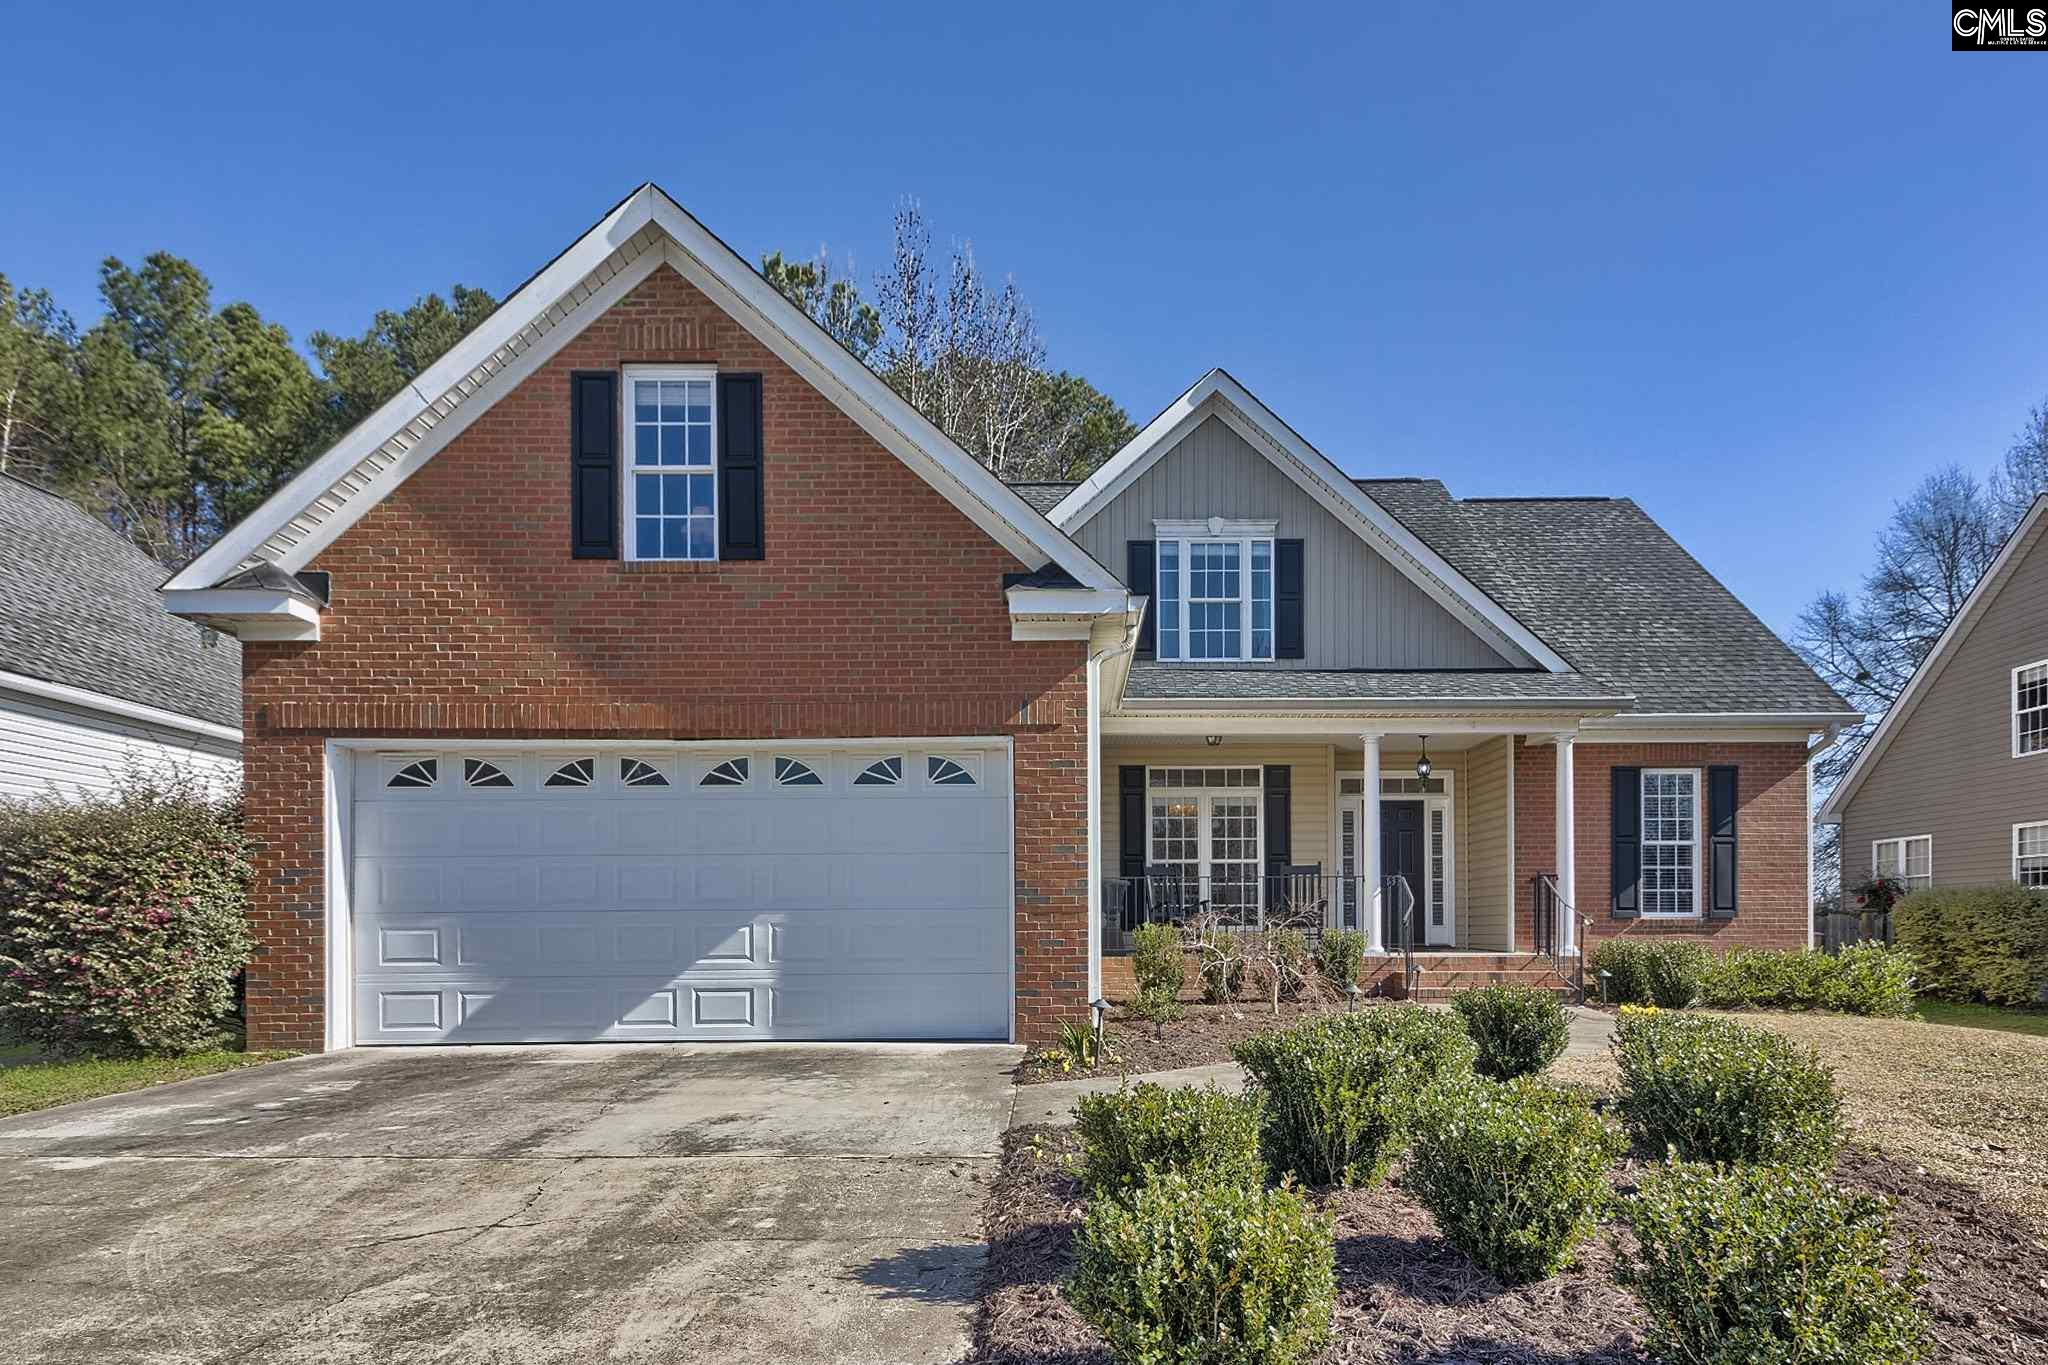 137 Mariners Creek Lexington, SC 29072